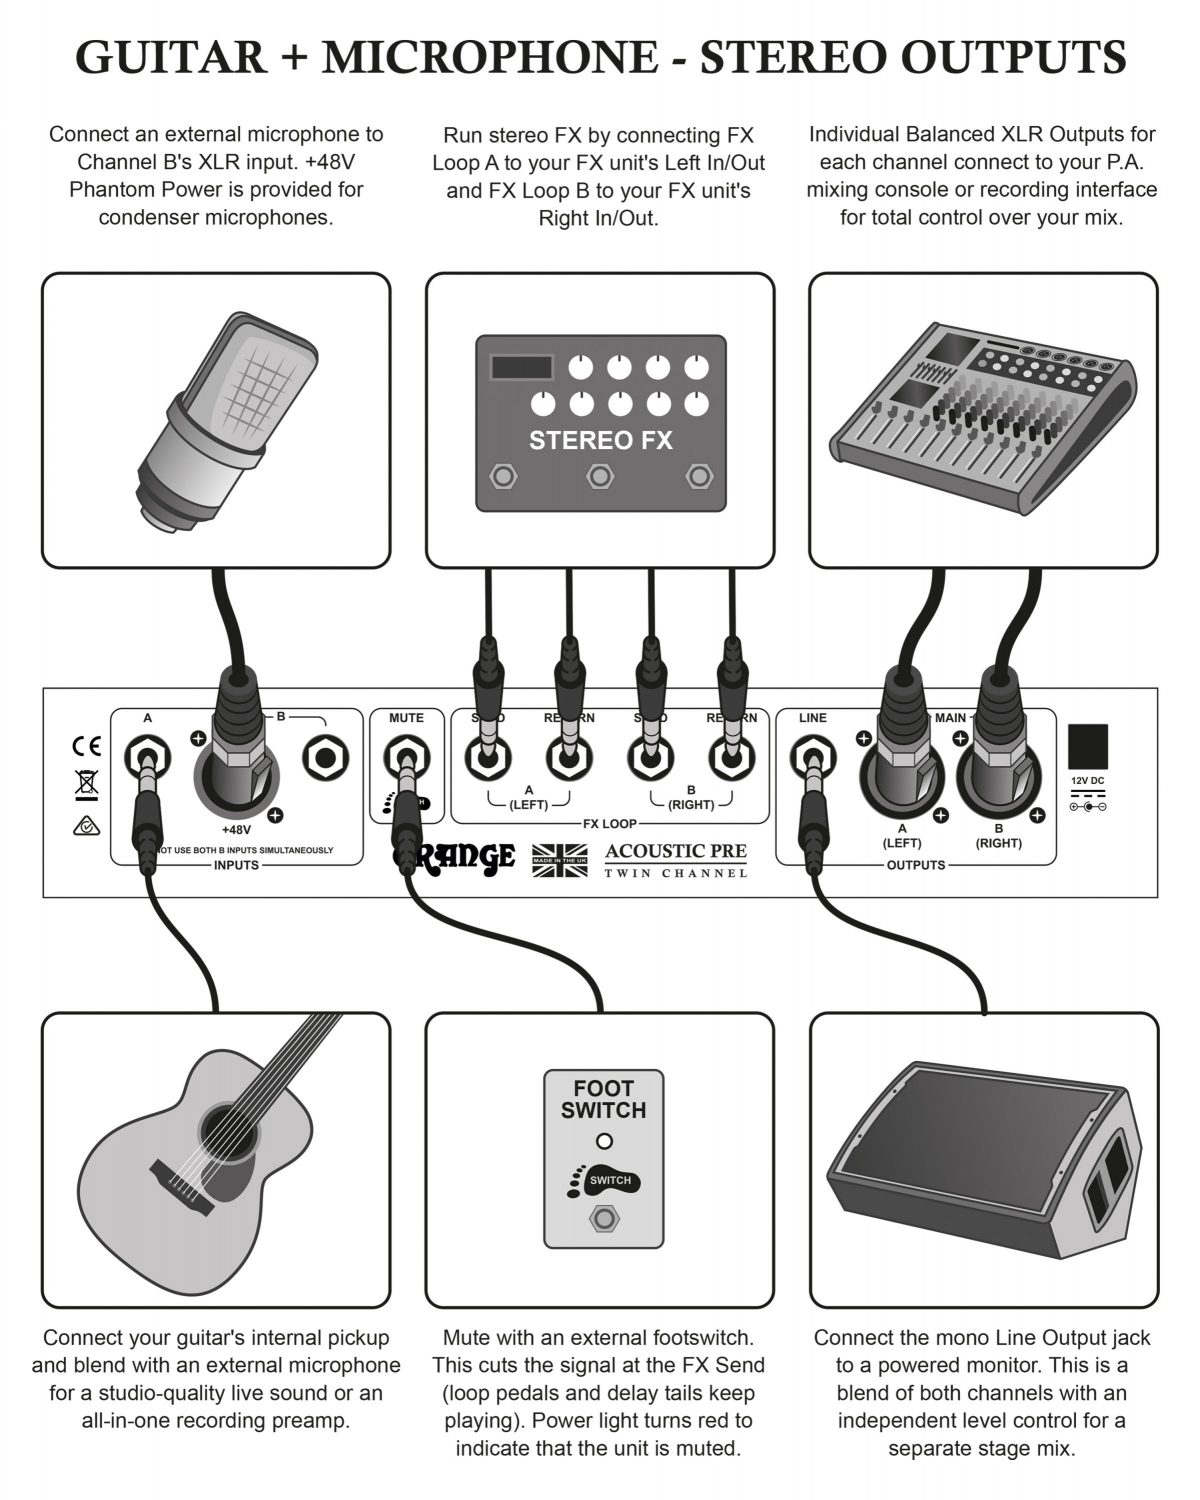 Acoustic Pre Twin Channel Manual Orange Amps Wiring Diagram Xlr To 1 4 Mono Jack Front Panel Features